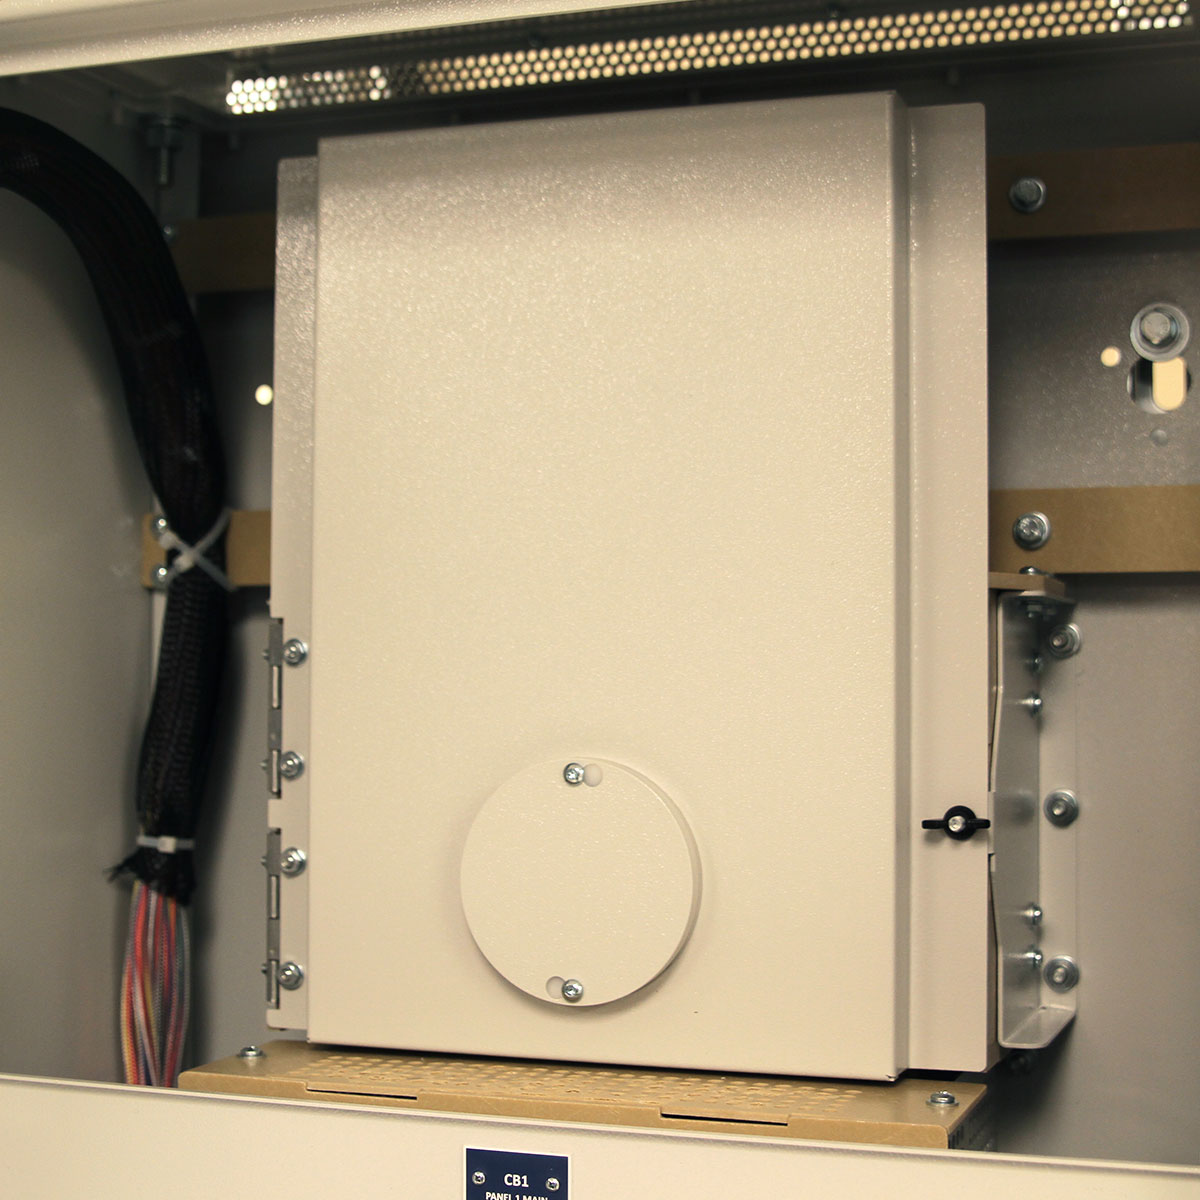 LayerZero Series 70: eRPP-SL1 Input Door with InSight™ IR Portholes.